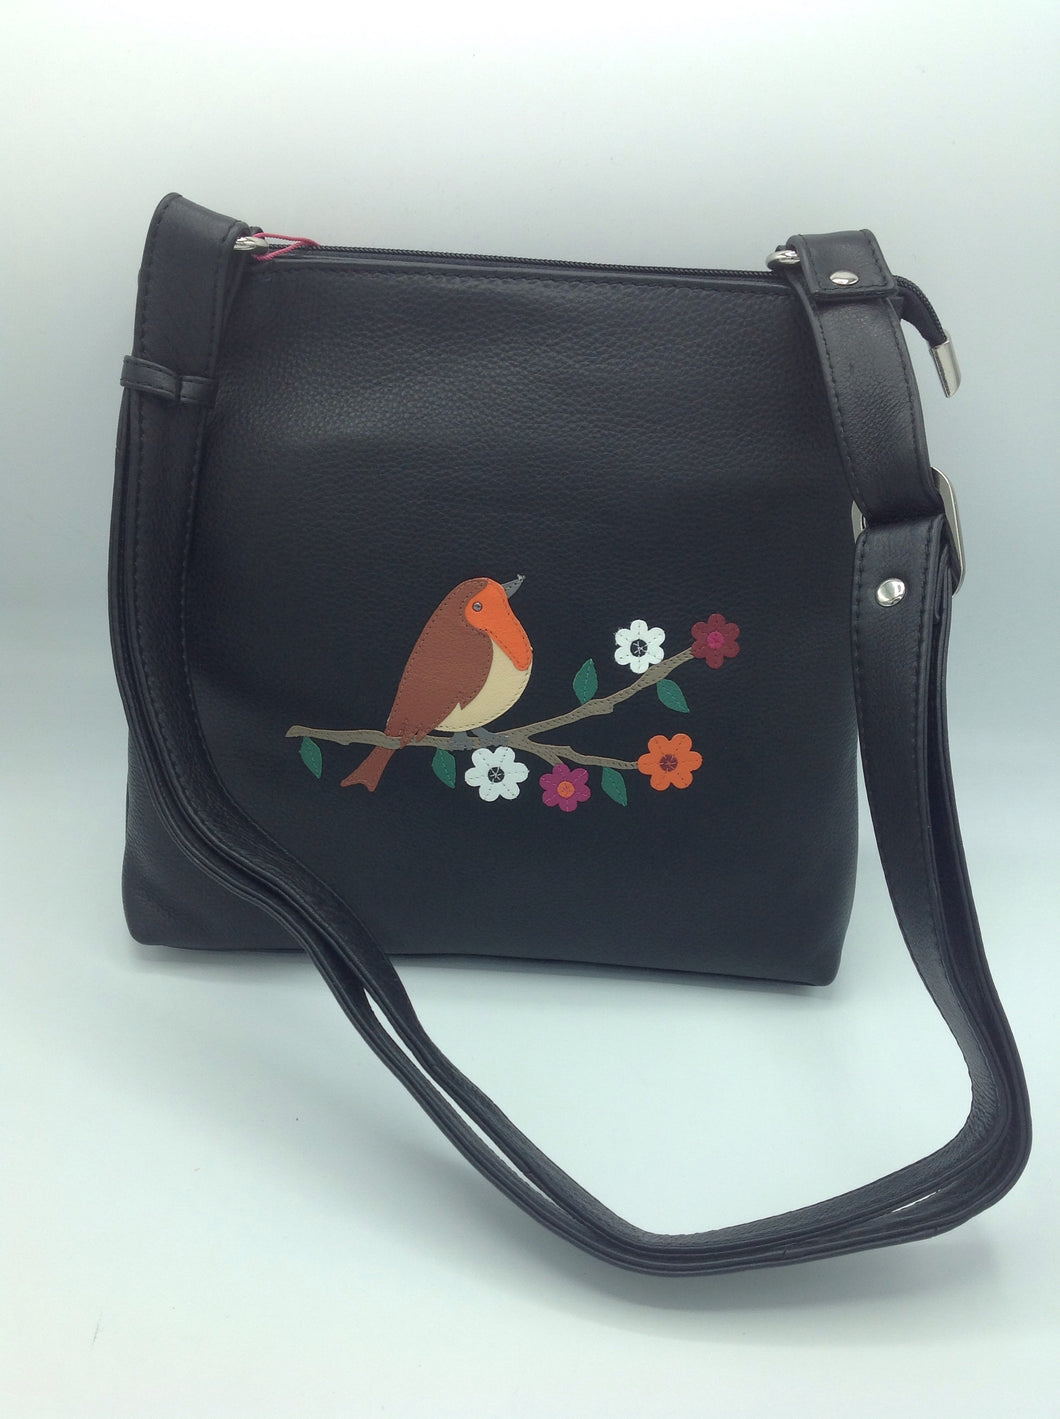 Mala Leather Cross Body Bag with a Robin Motif